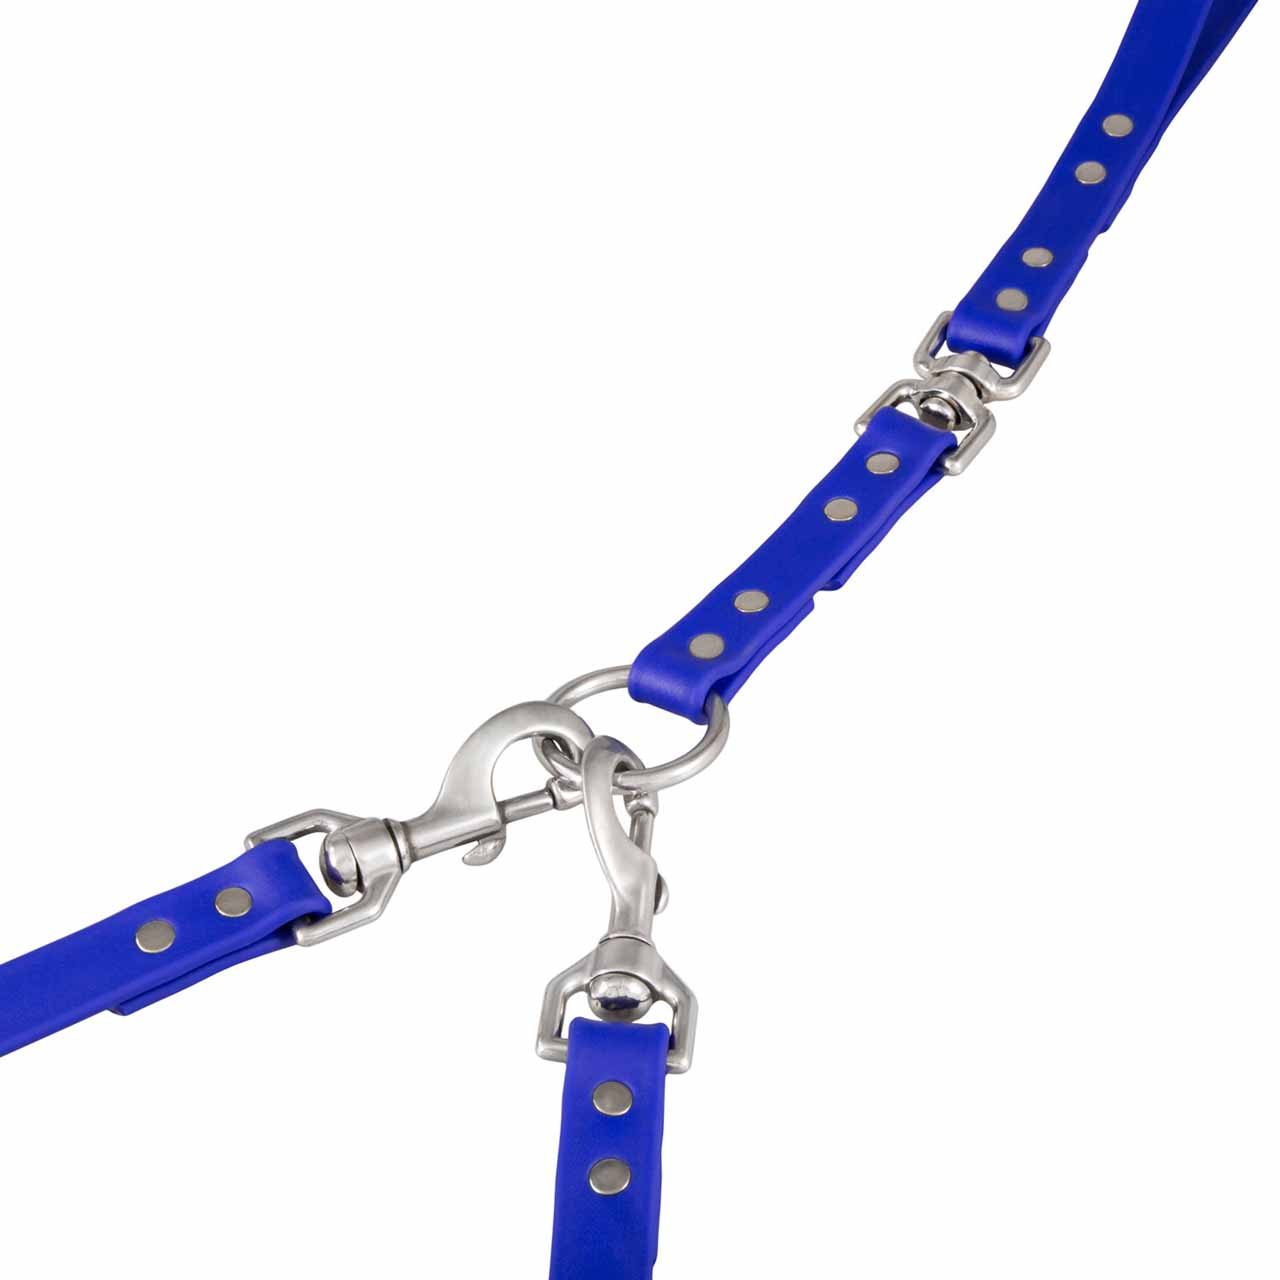 Waterproof Multi-Use Leash